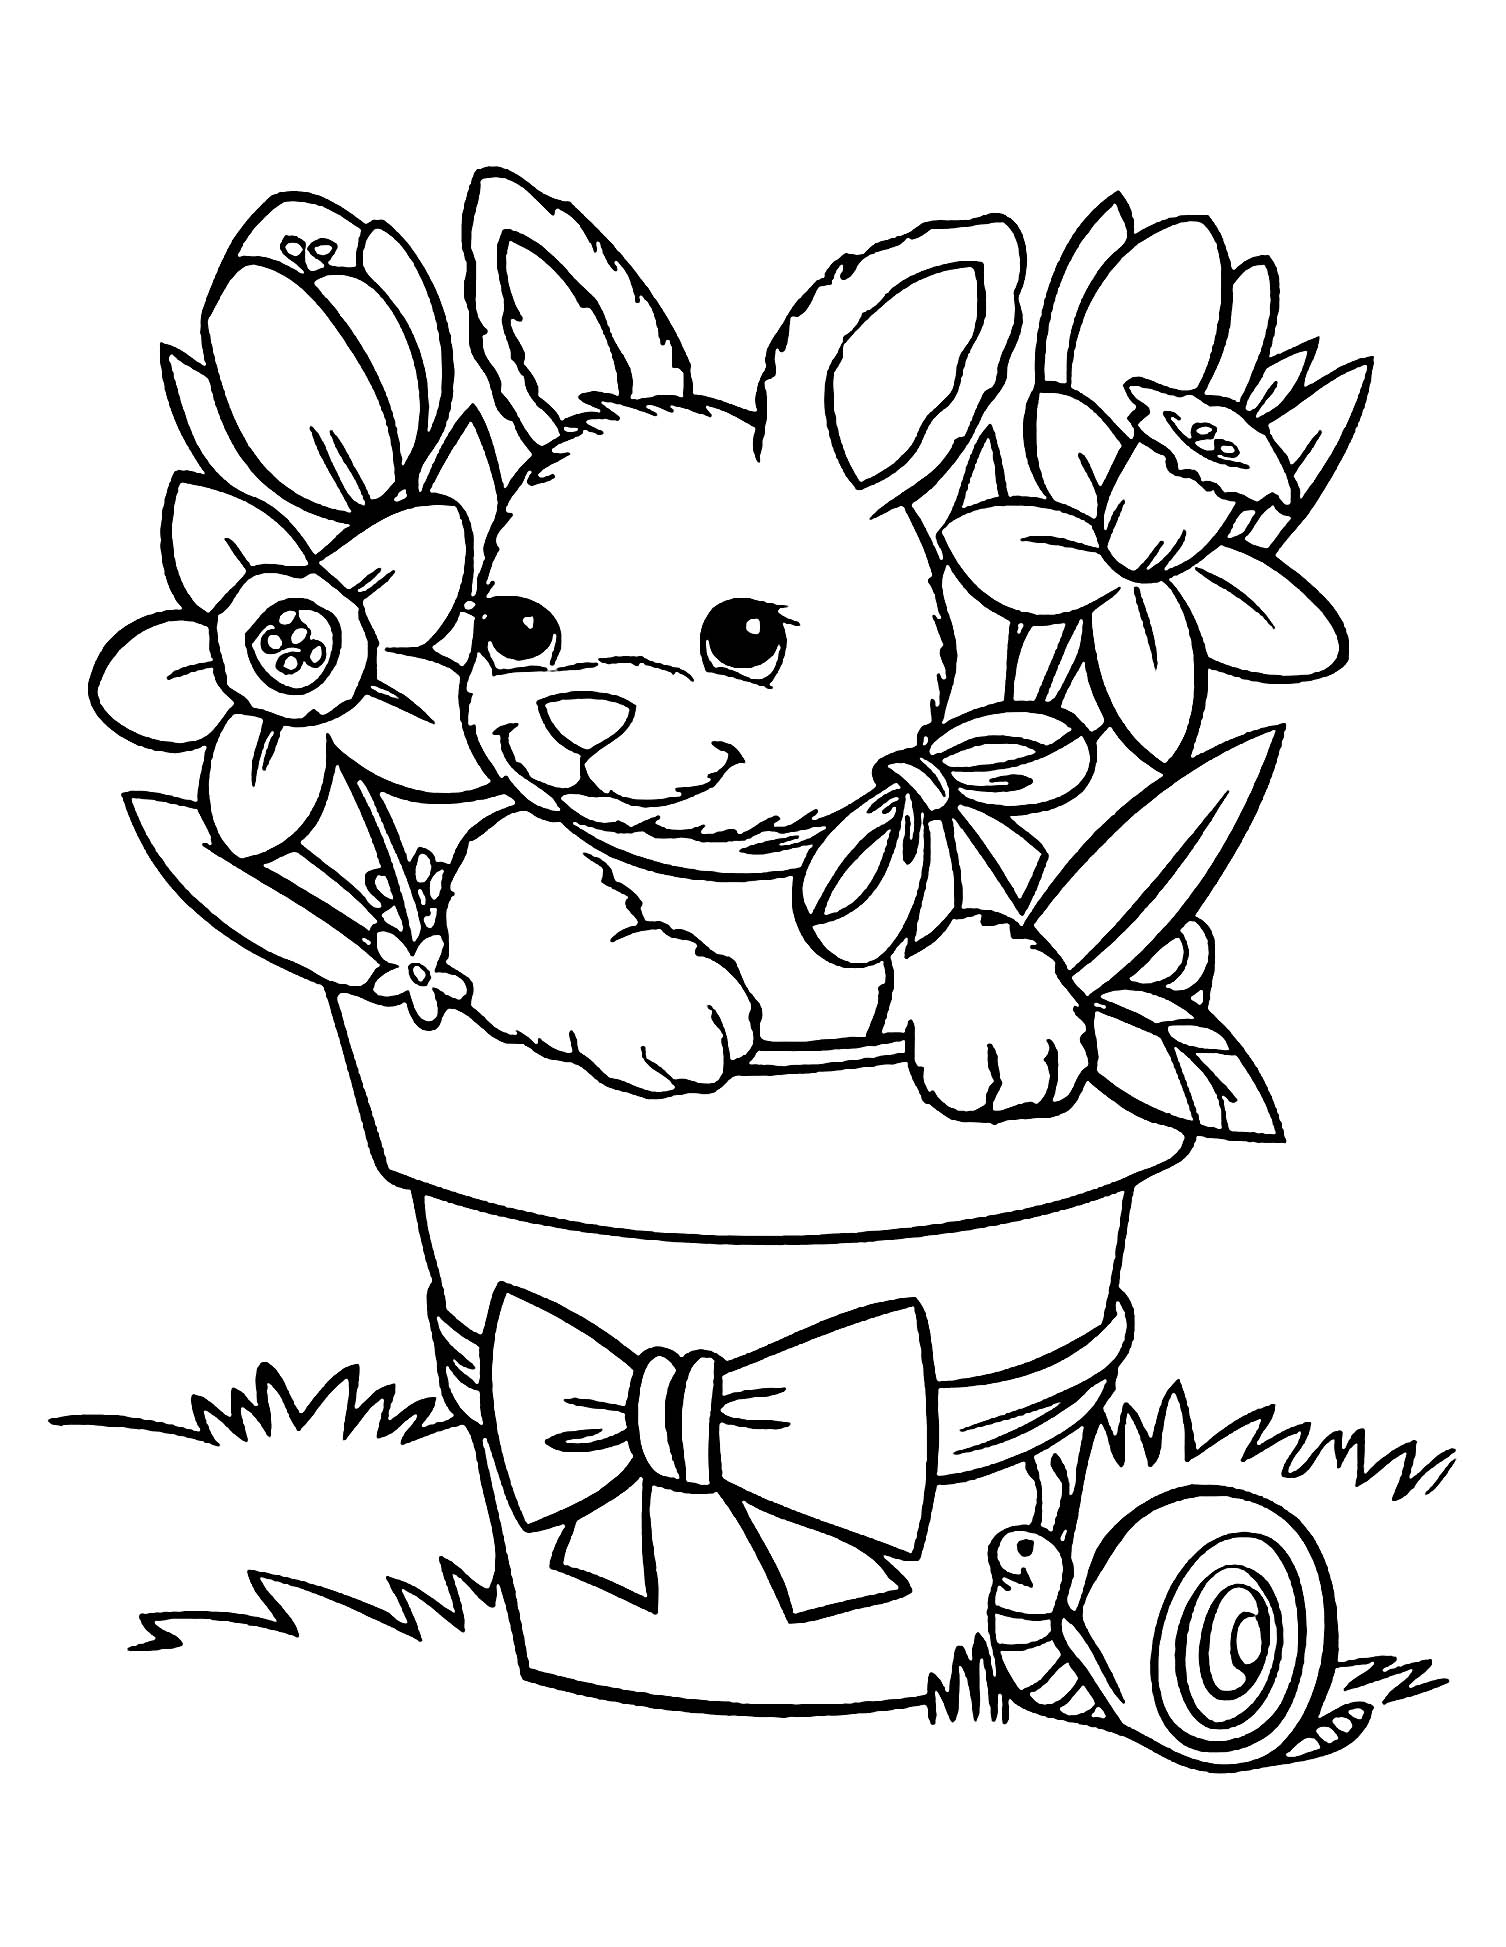 bunny coloring pages free rabbit to print for free rabbit kids coloring pages coloring bunny free pages